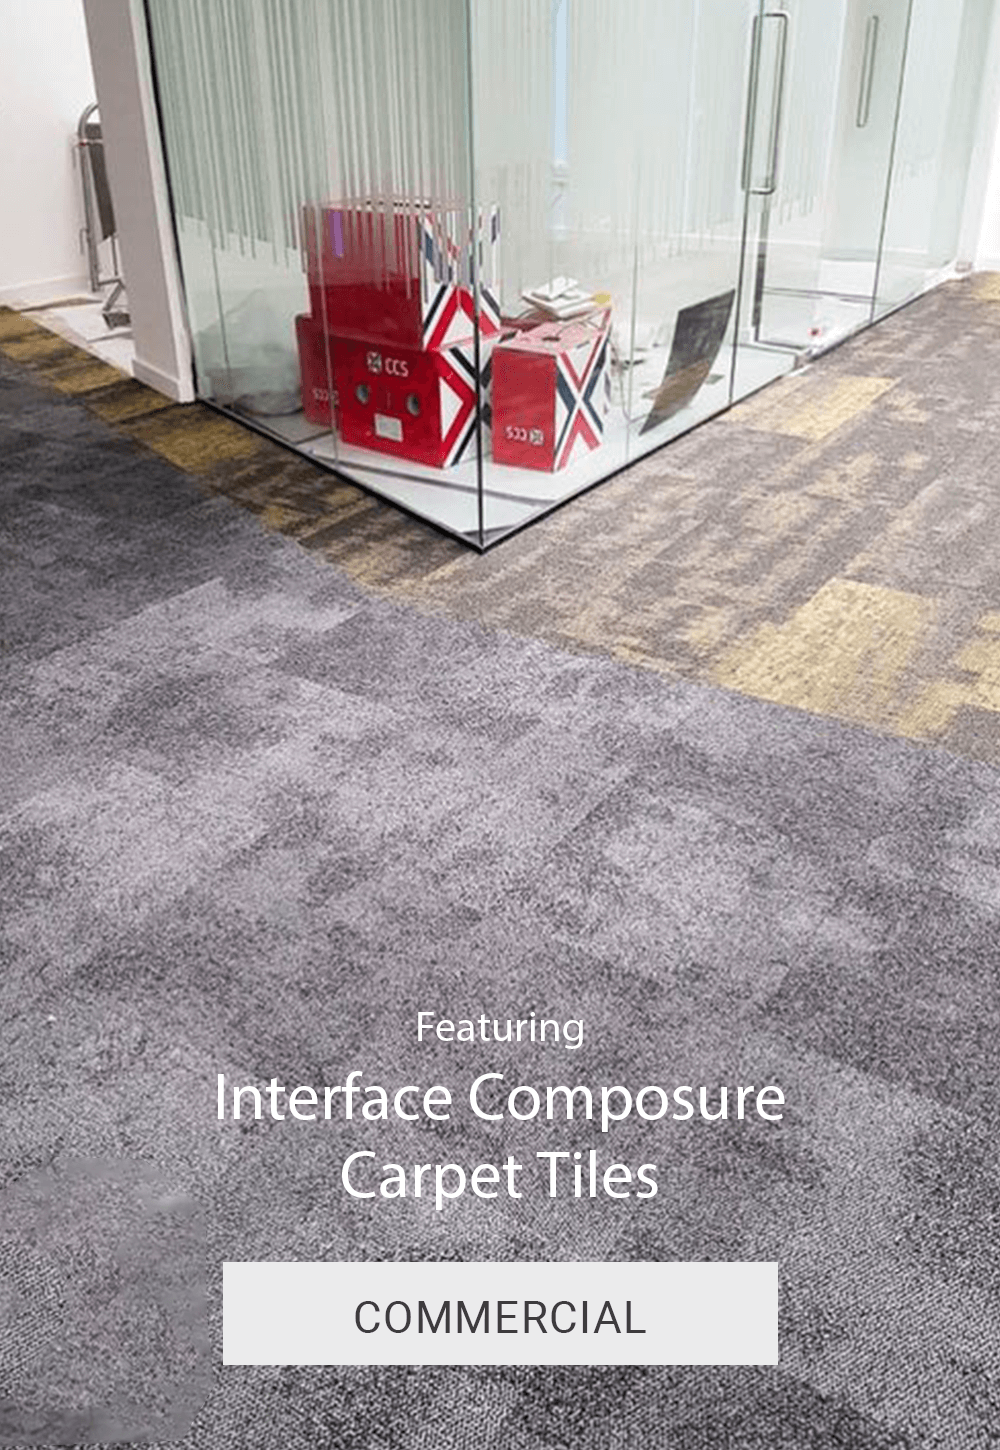 Interface Composure 2019.01